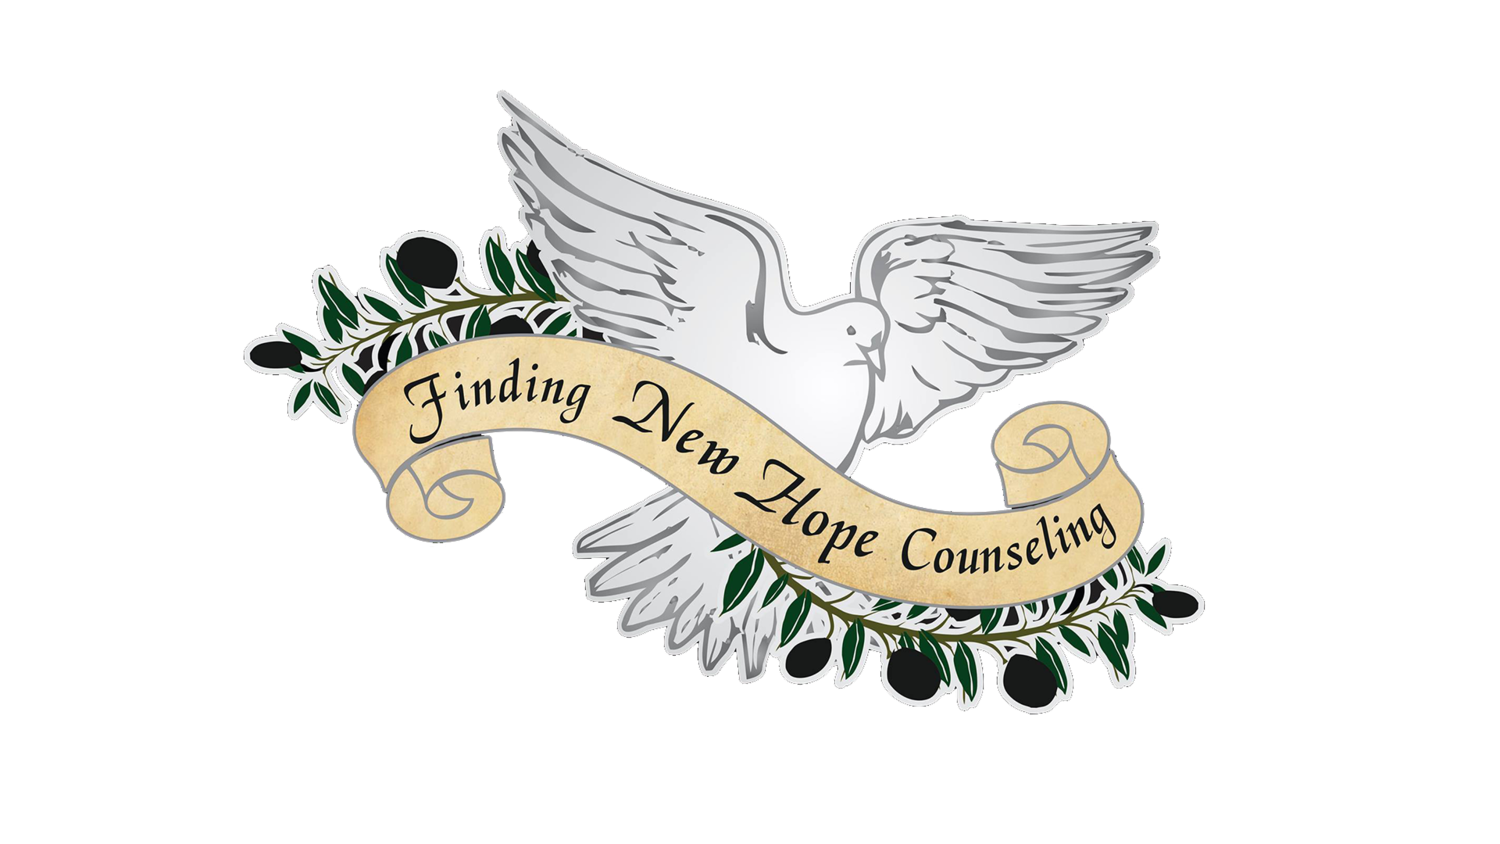 Finding New Hope Counseling